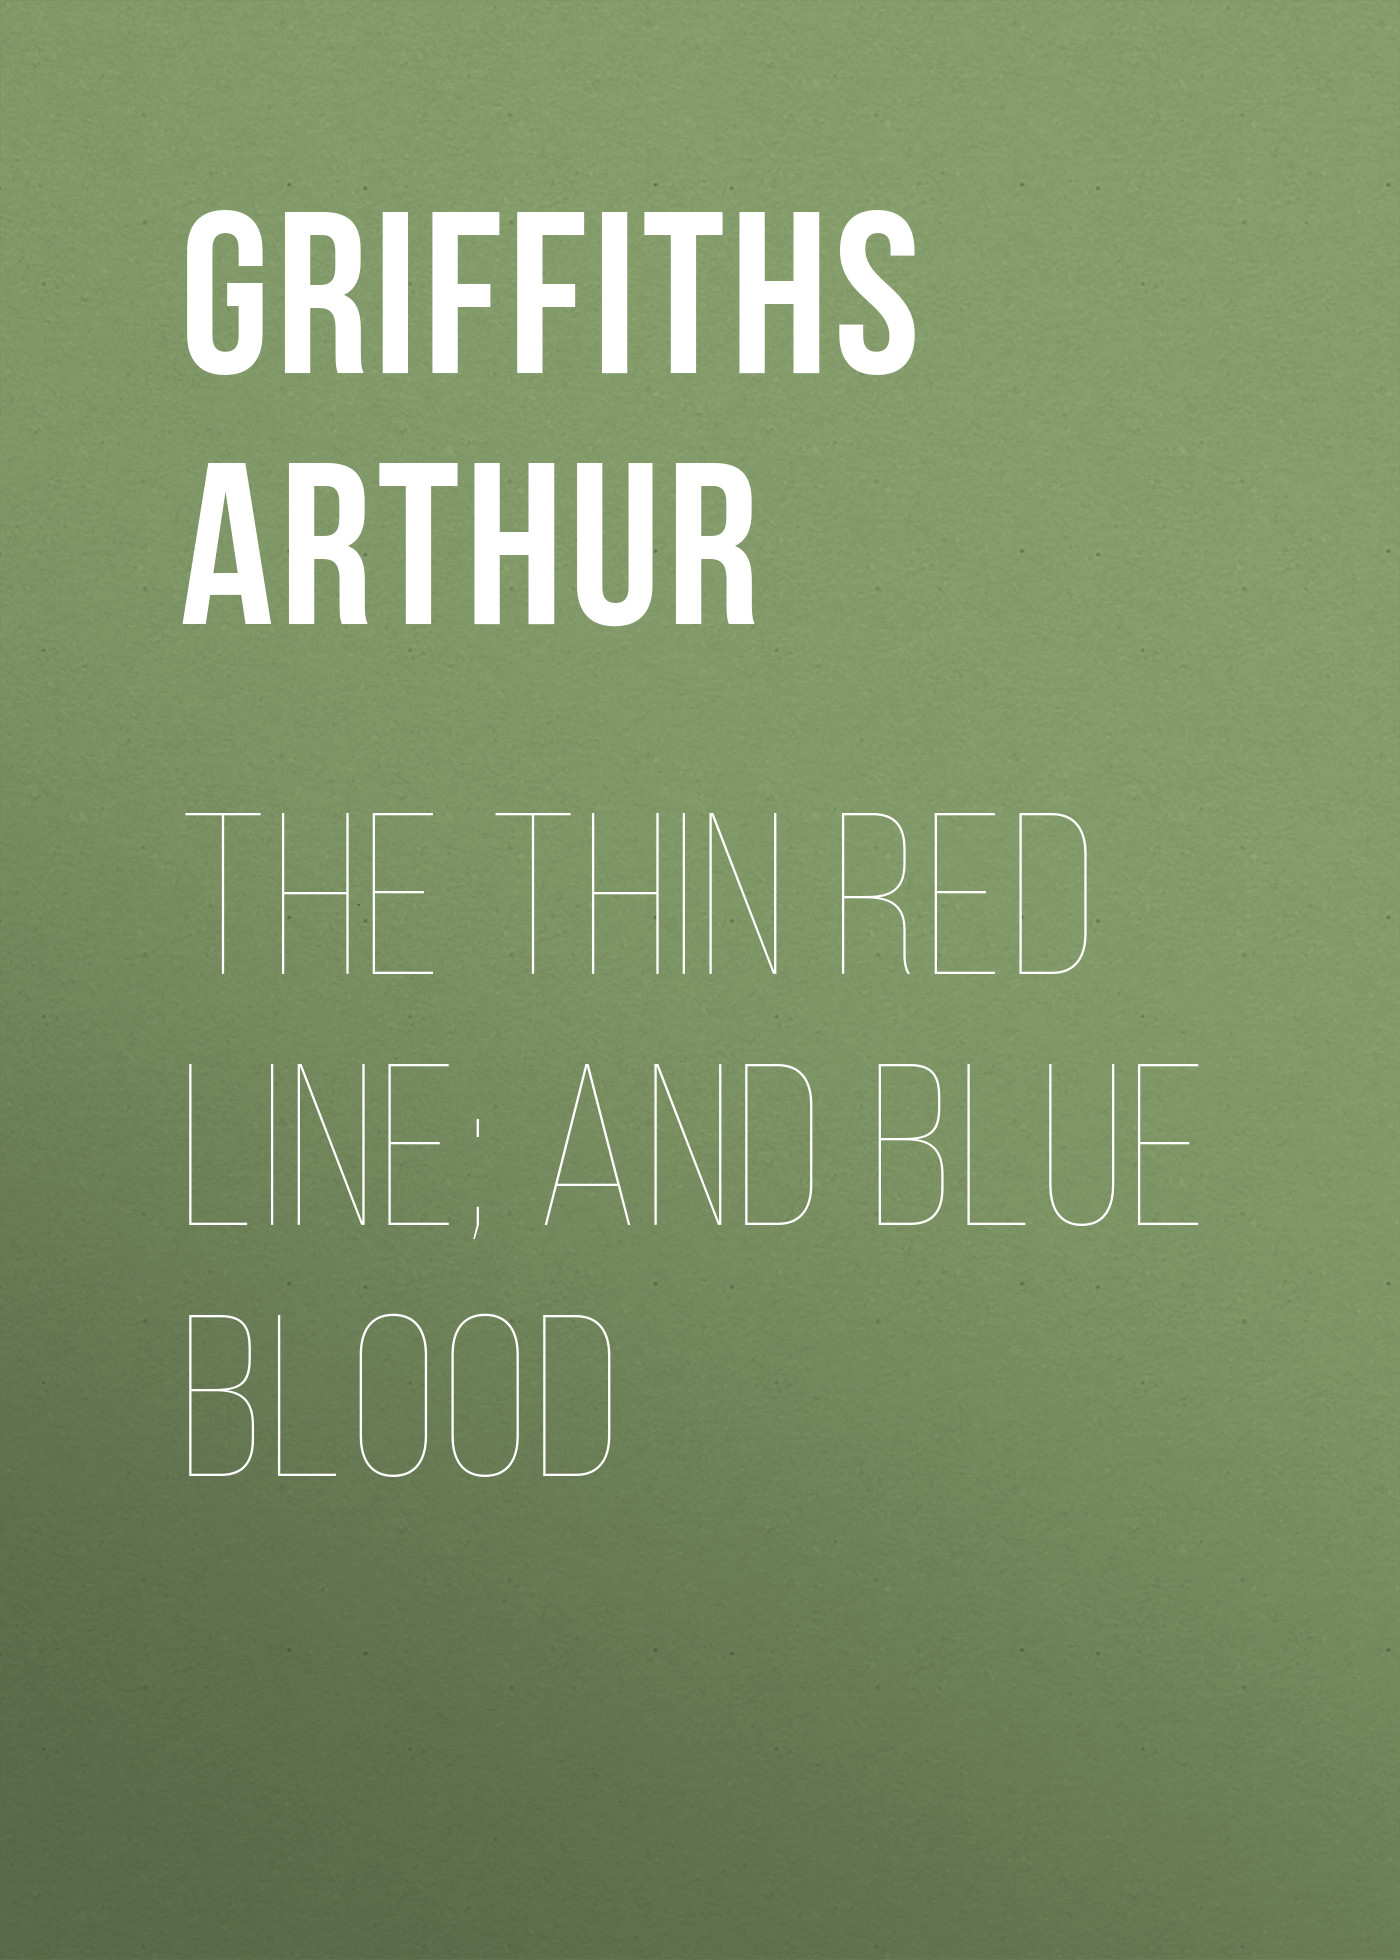 Griffiths Arthur The Thin Red Line; and Blue Blood griffiths arthur the queen s shilling